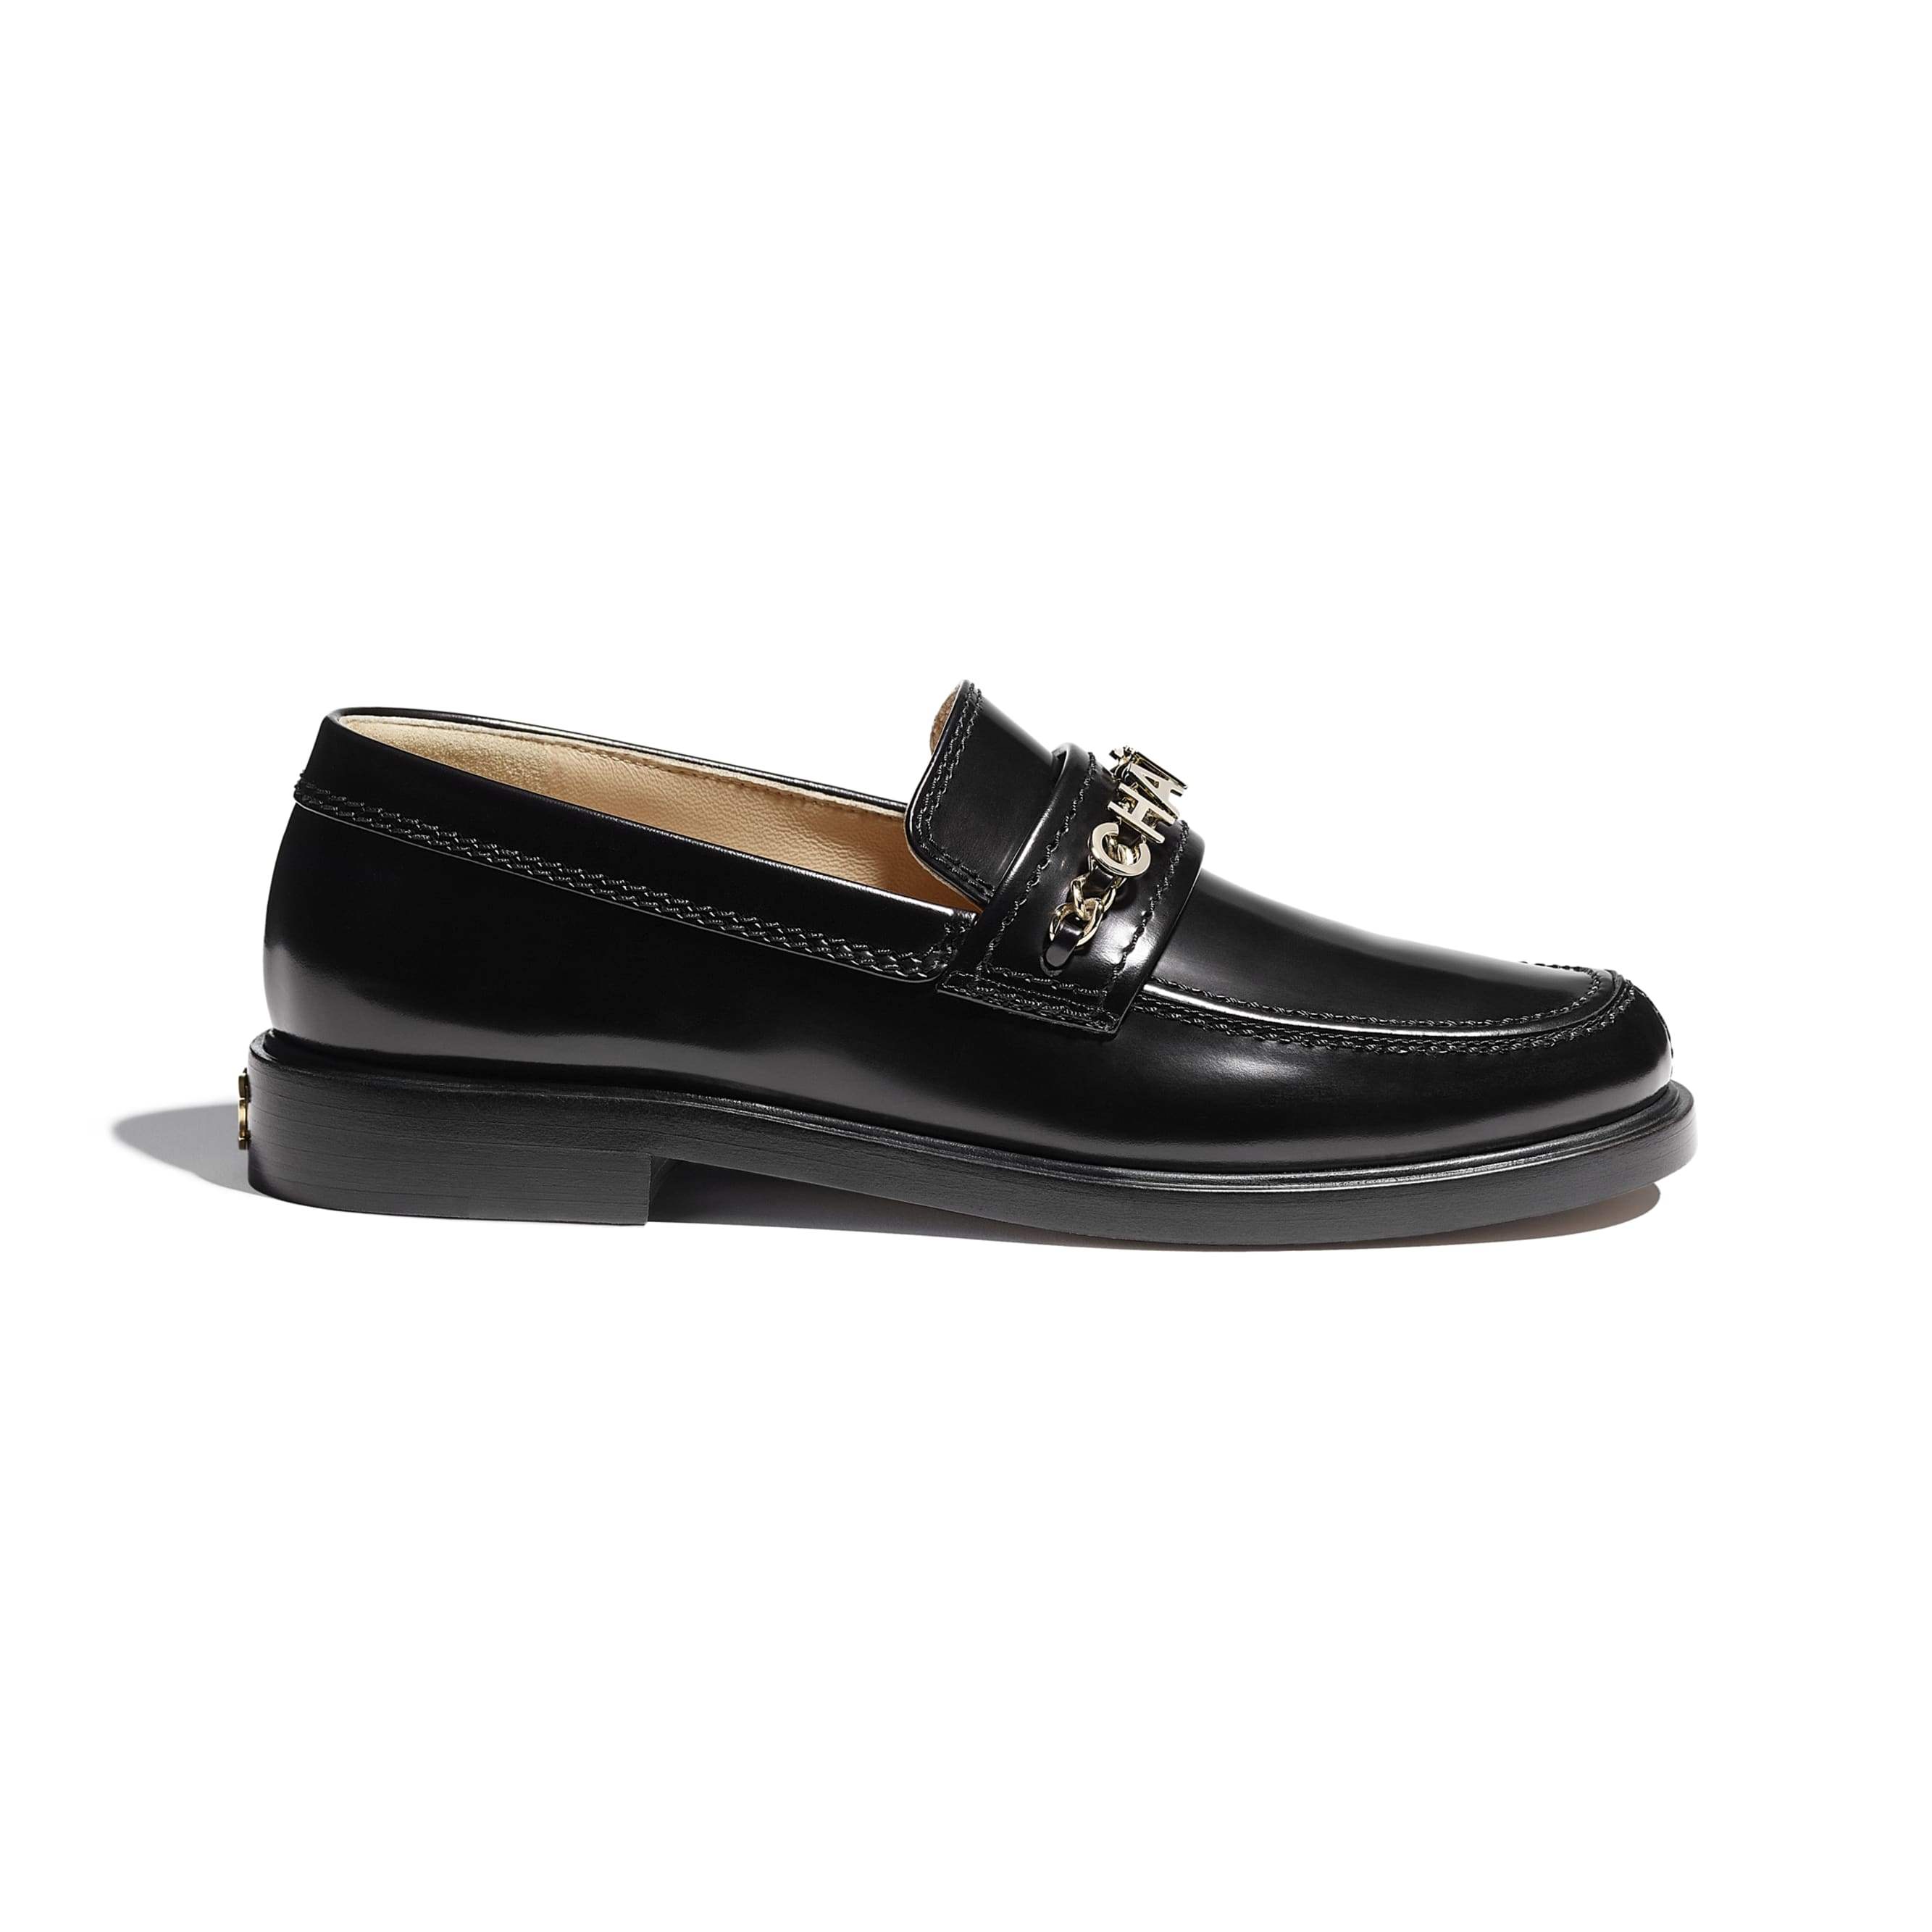 Loafers - Black - Shiny Calfskin - CHANEL - Default view - see standard sized version